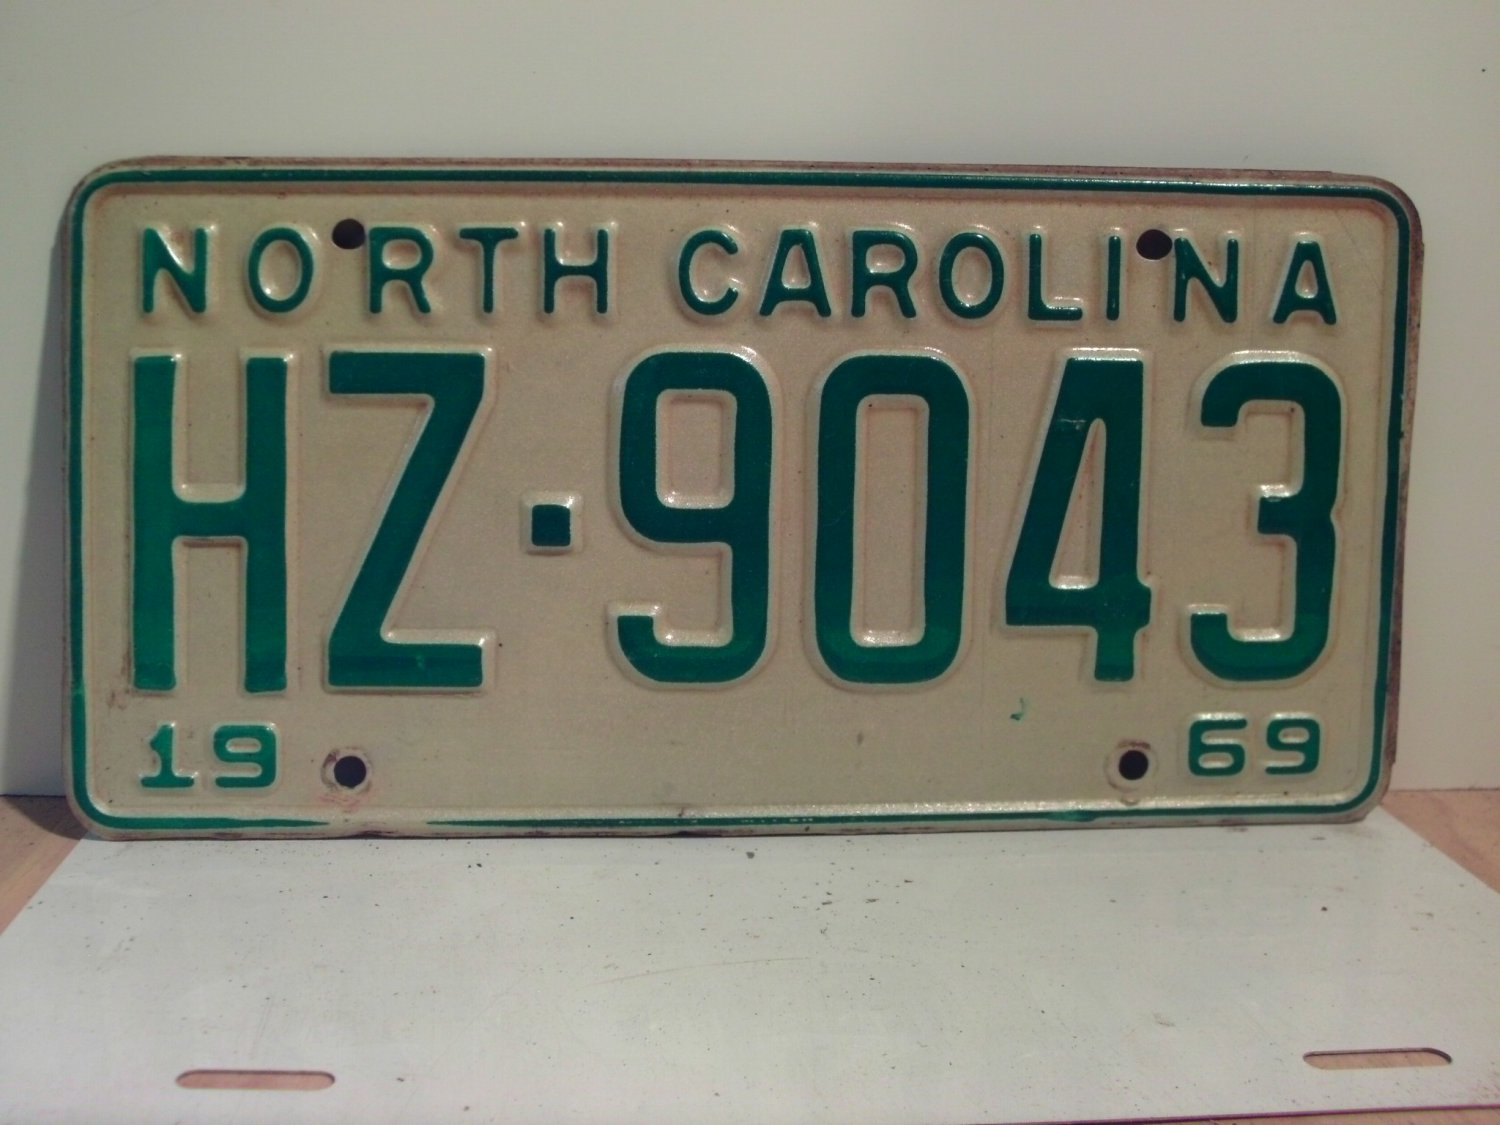 1969 North Carolina NC Passenger License Plate HZ-9043 VG